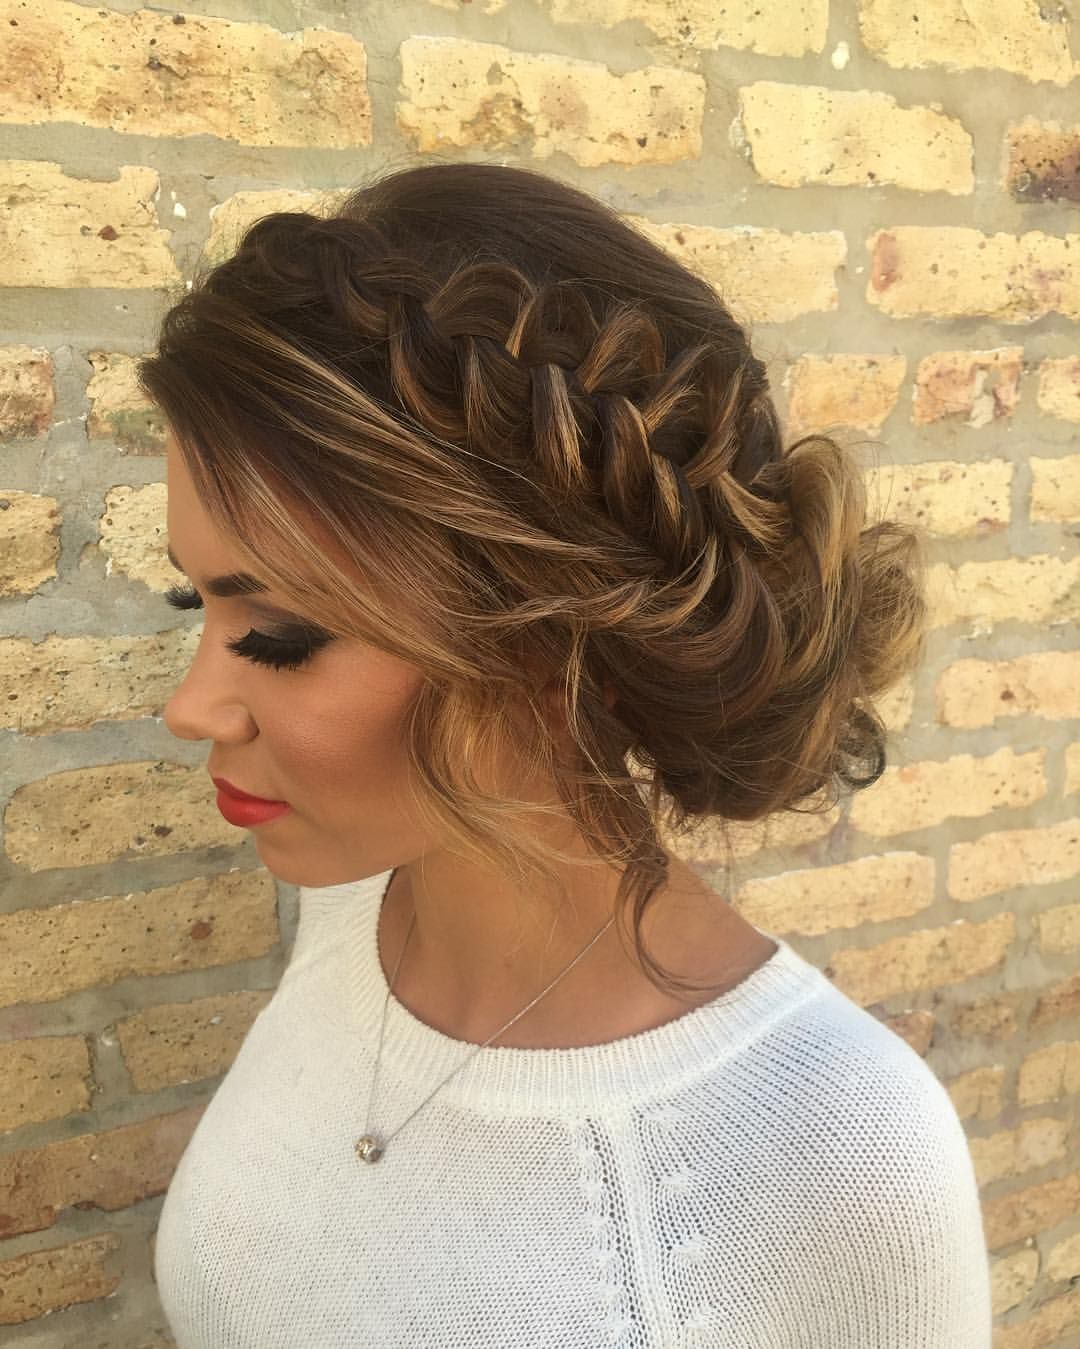 lovely braided updo | classic + vintage wedding hairstyle